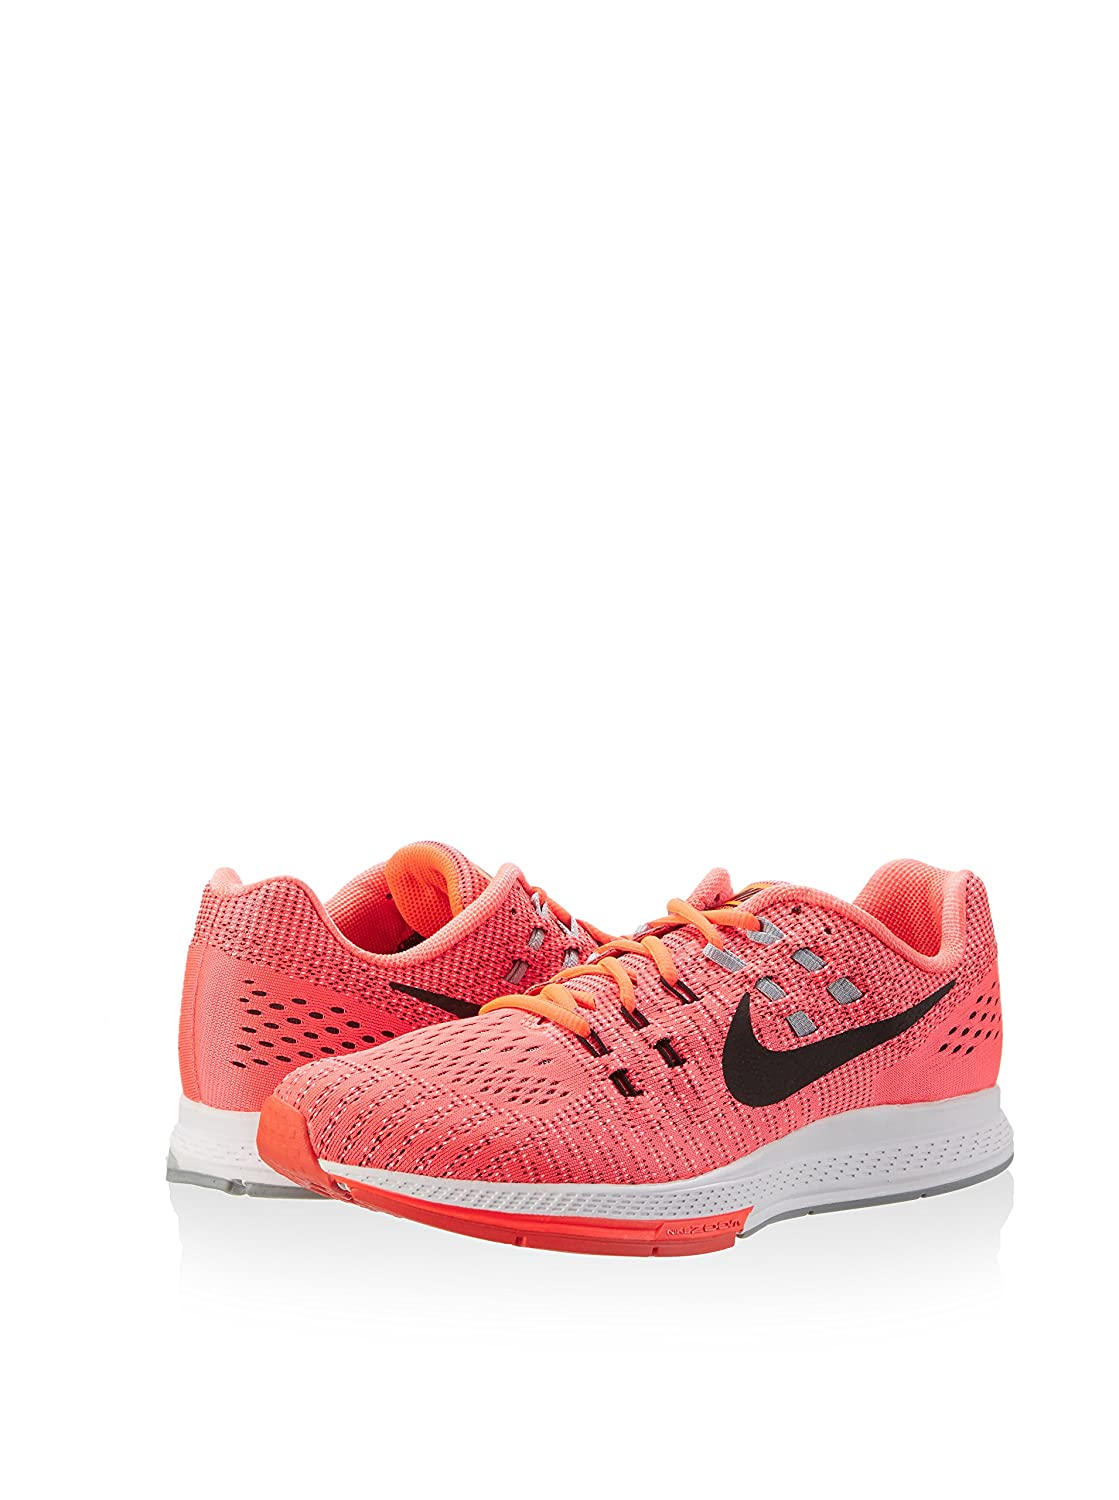 newest fbc03 e0aad Amazon.com: Nike Air Zoom Structure 19 Running Shoes Men's ...